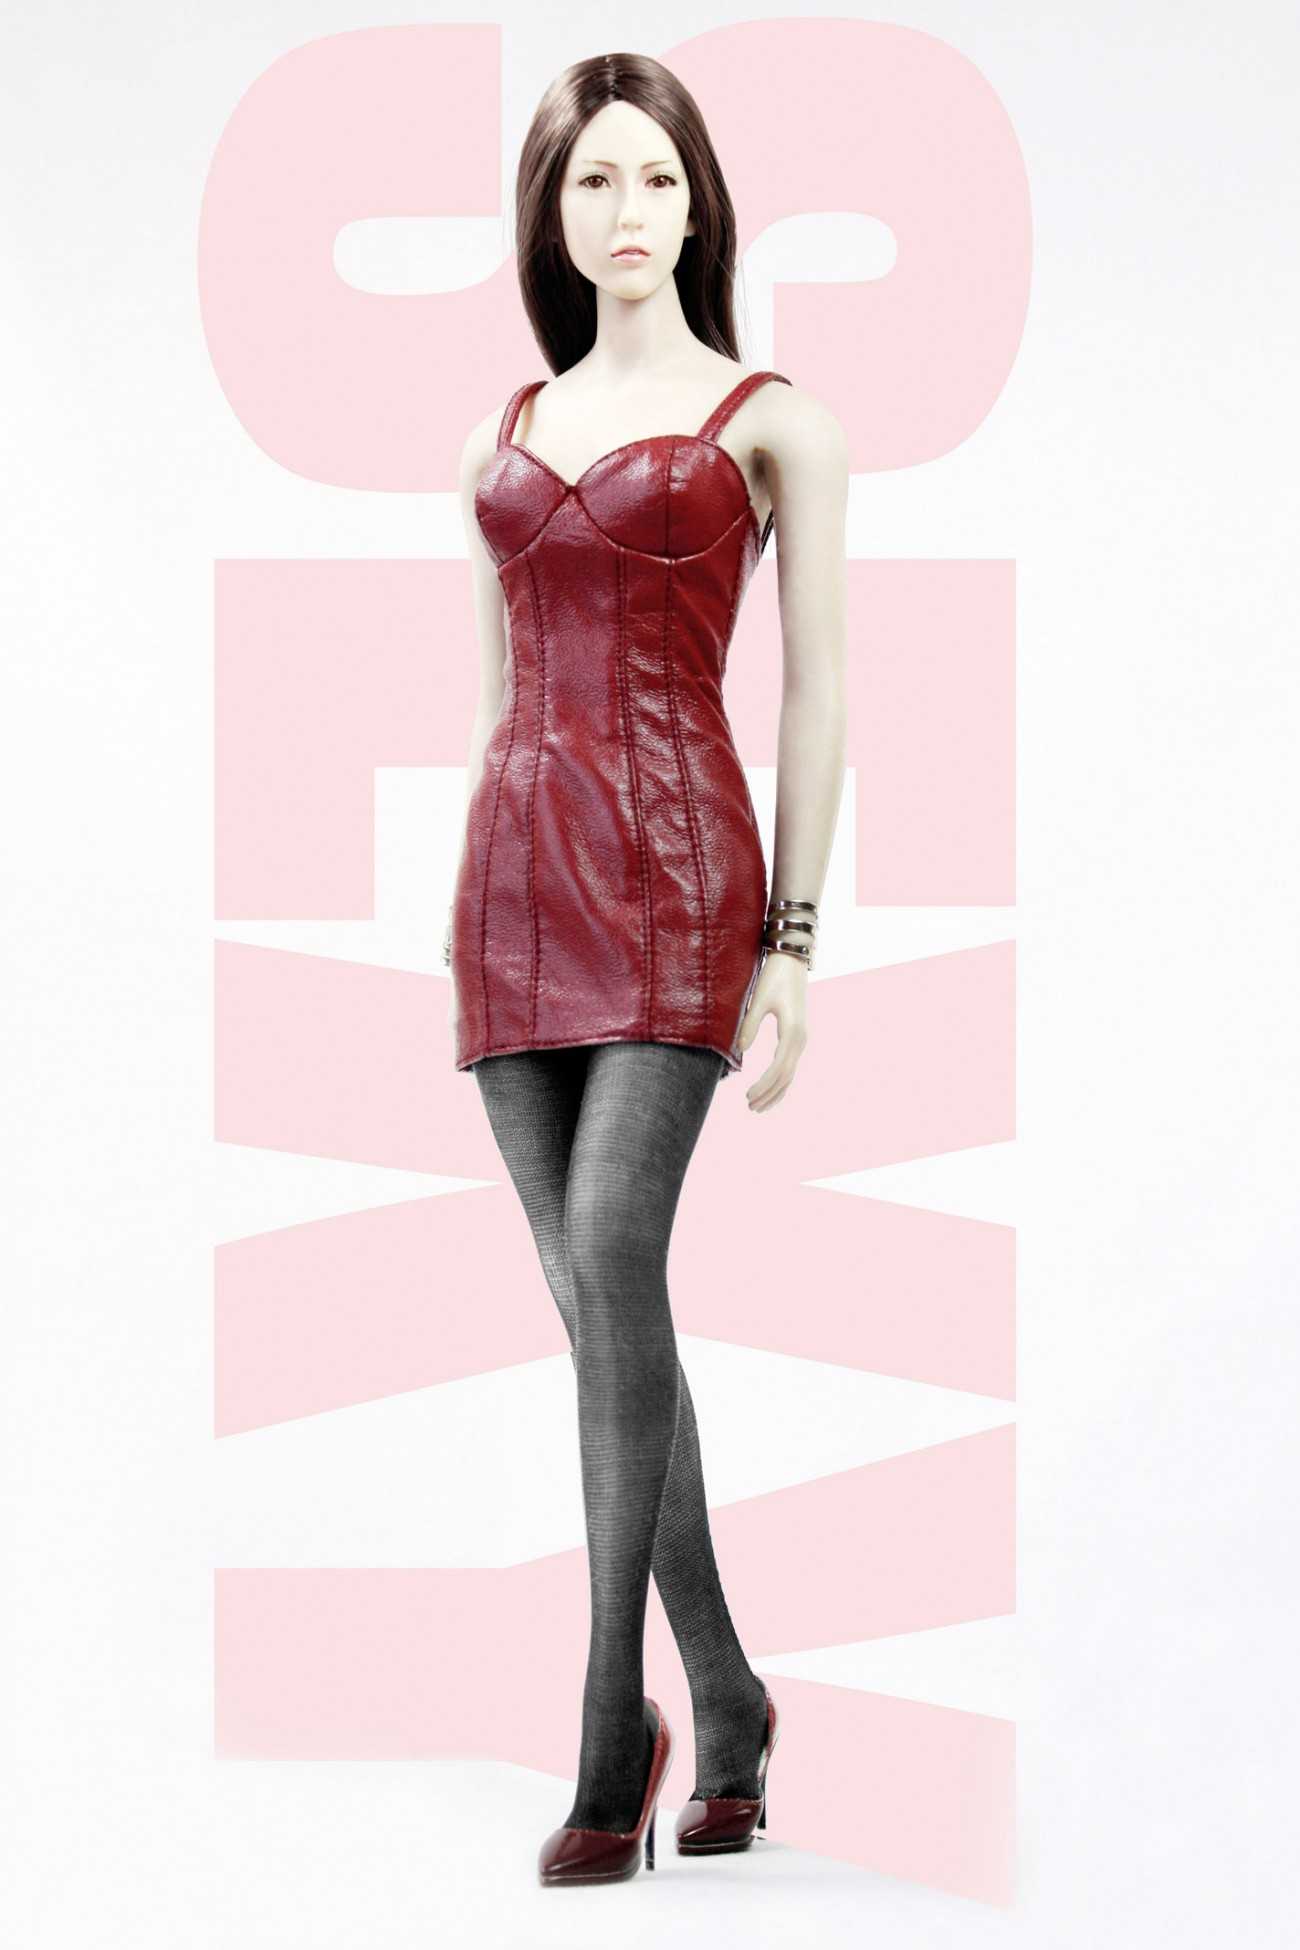 POPTOYS F17-B RED (Haute couture version) Ladies Sexy Leather Skirt Dress Suit